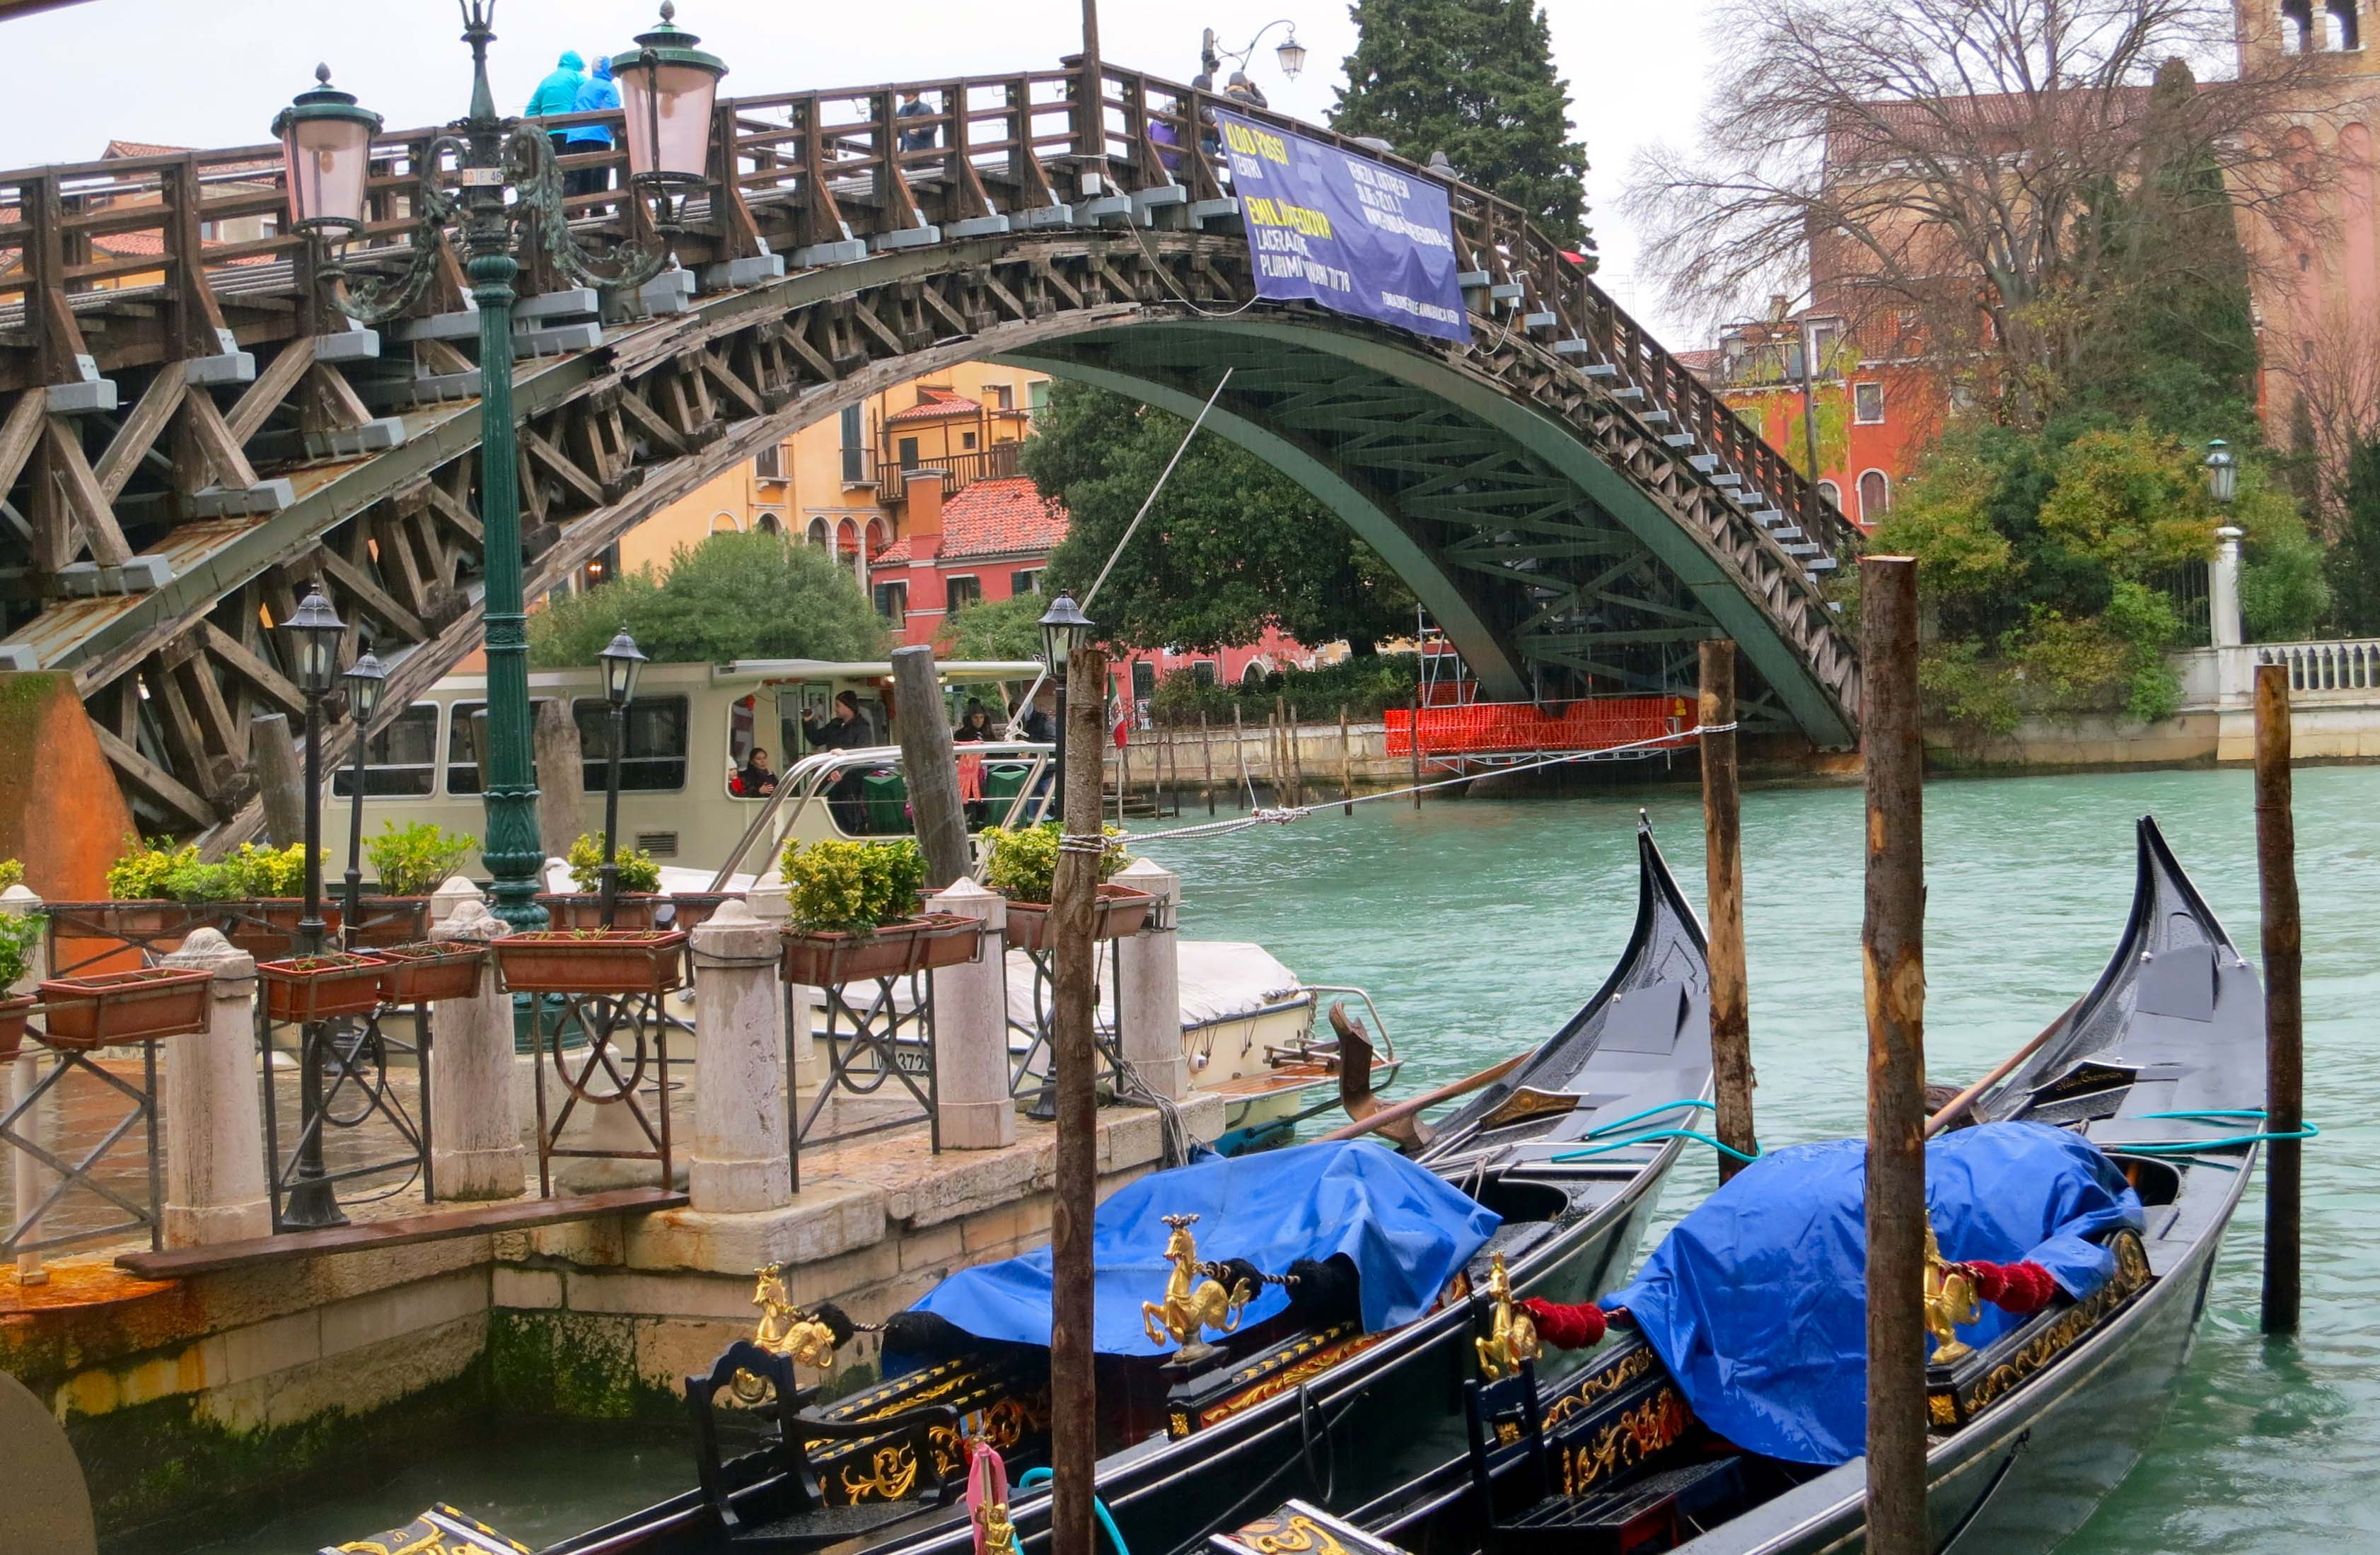 I took this photo from the other side of the Accademia Bridge to capture the parked gondolas and the boat taxi that is crossing under the bridge.